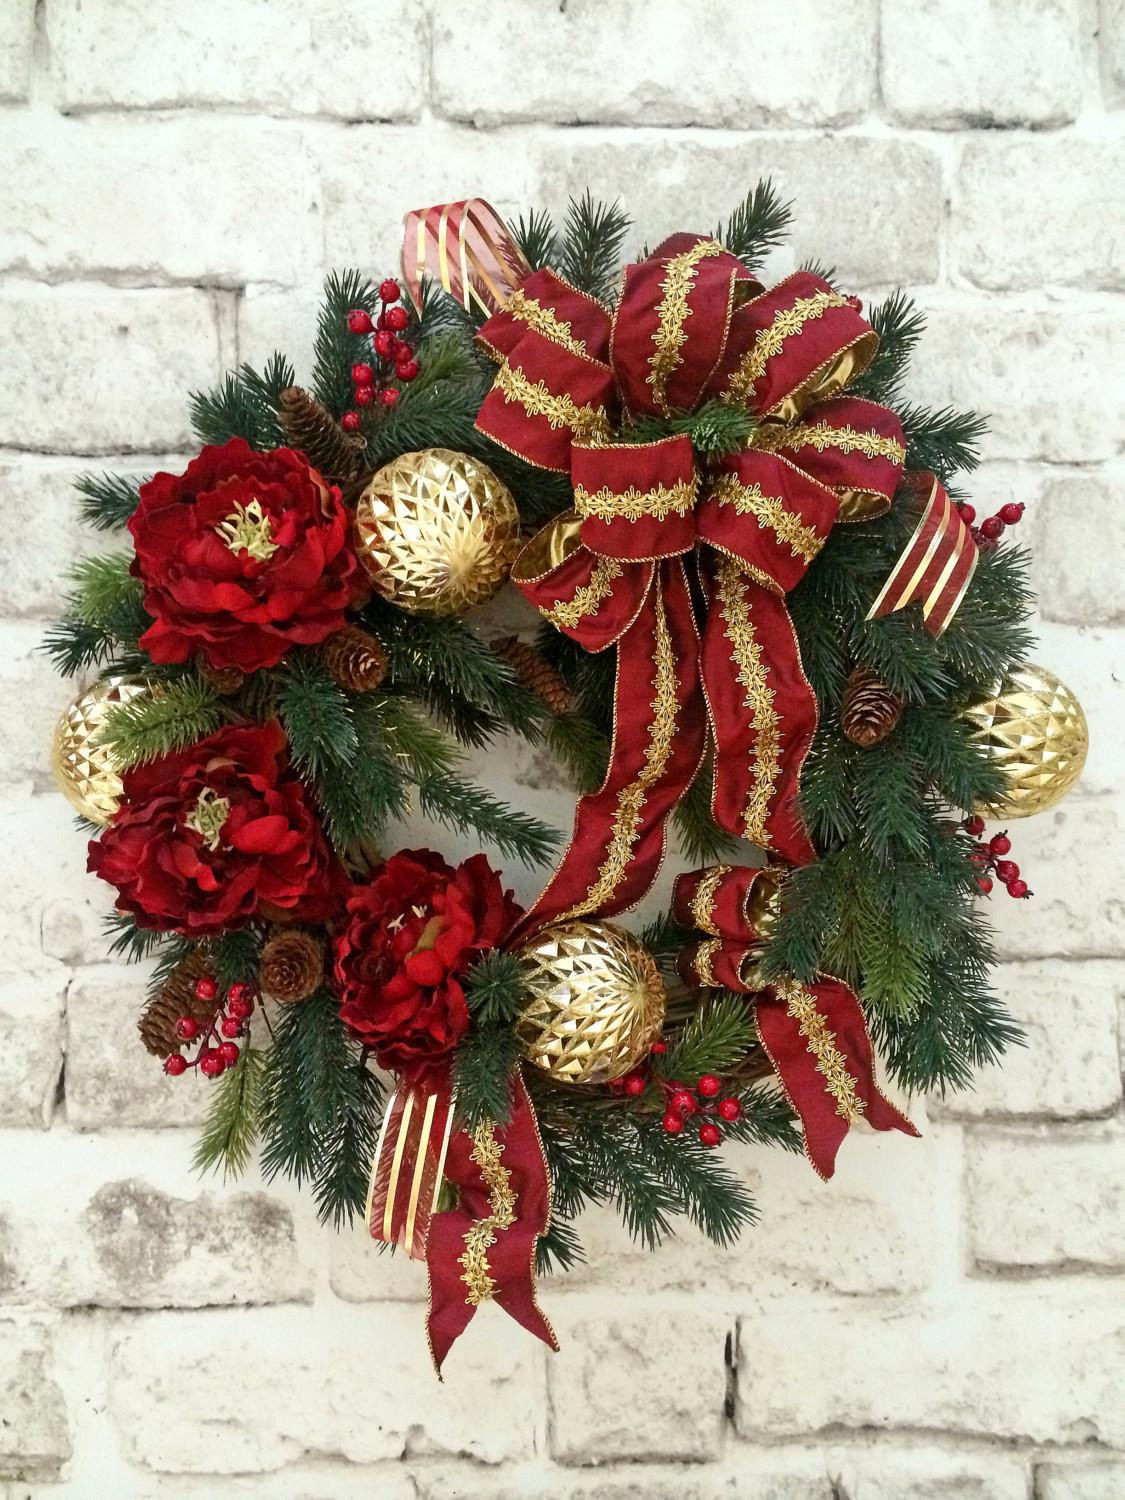 Christmas Wreath Holiday Decor Outdoor